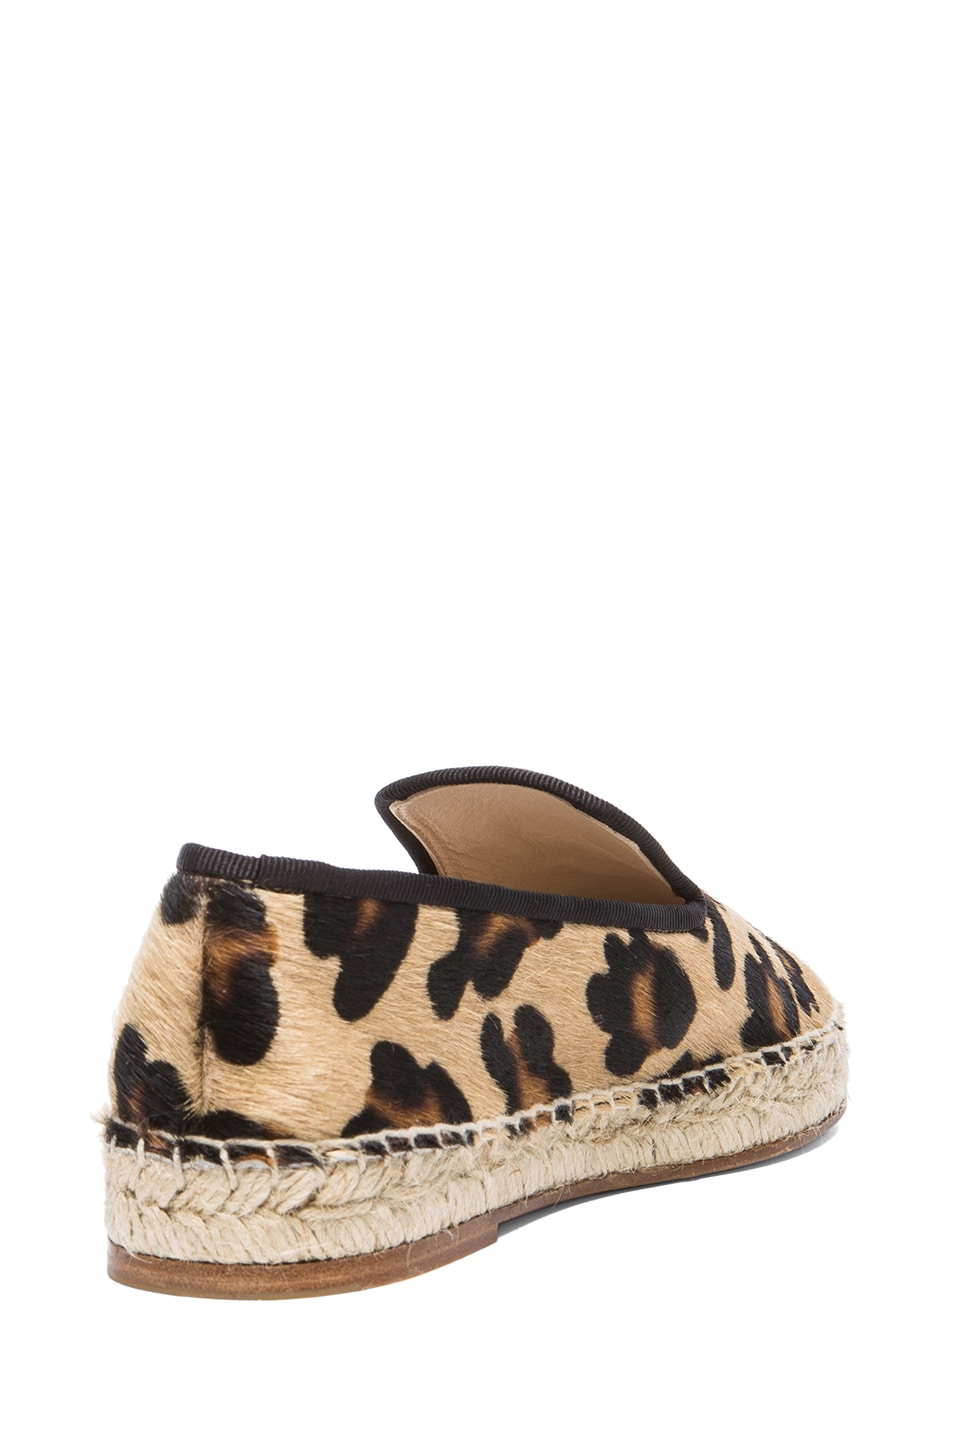 Image 3 of elysewalker los angeles Calf Hair Espadrilles in Leopard